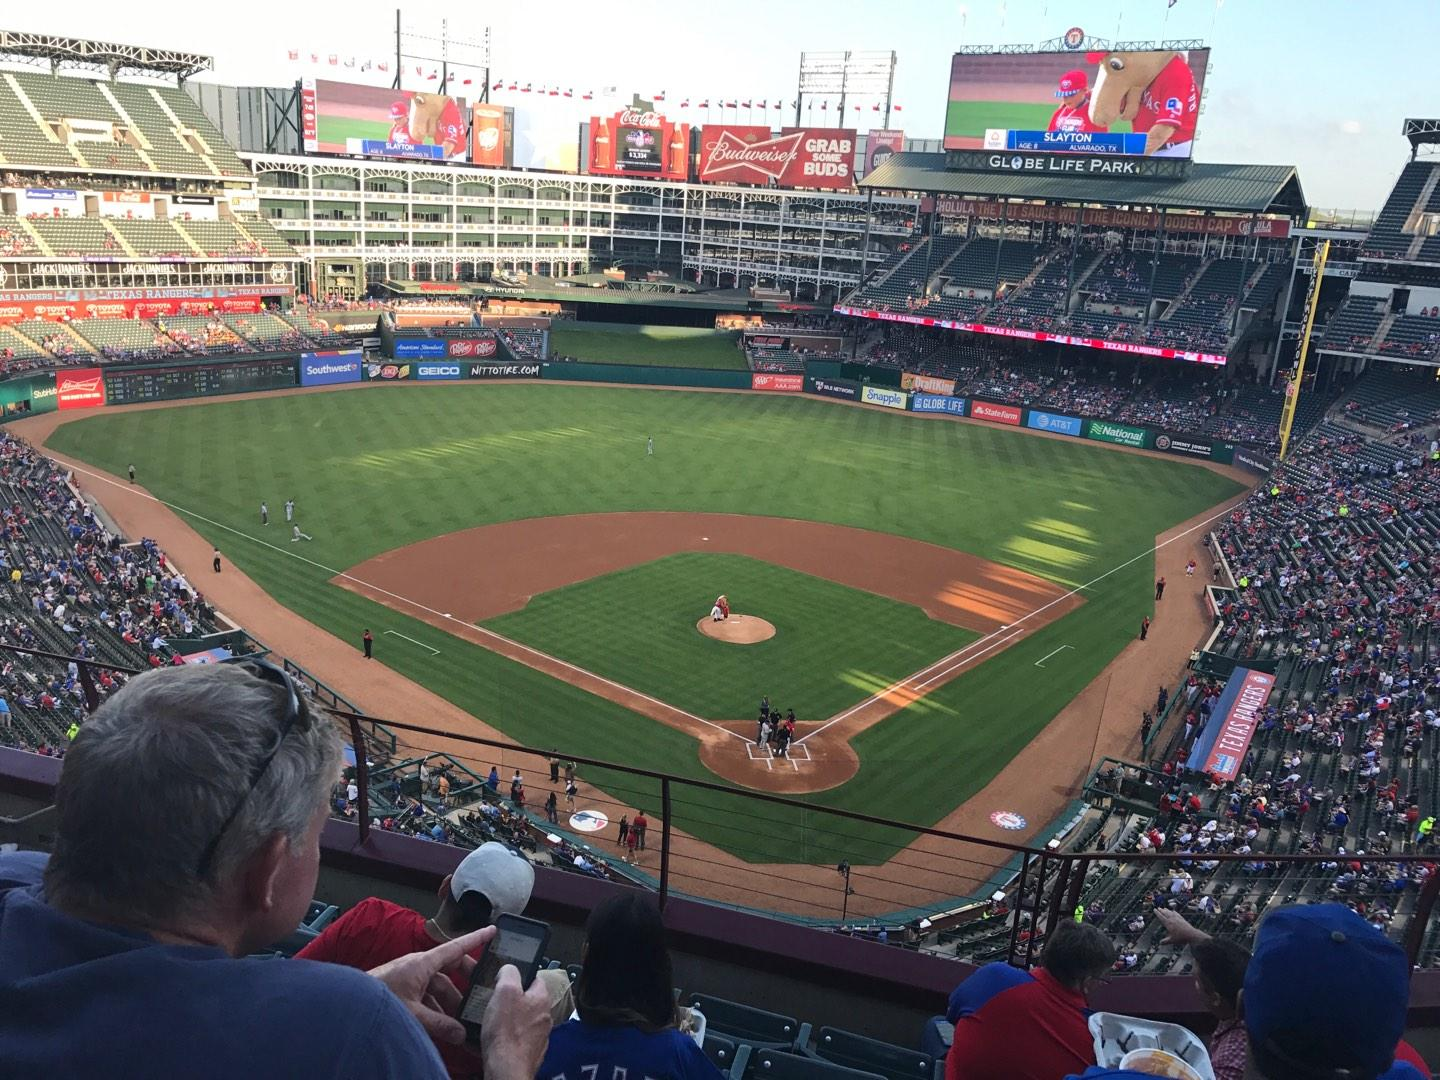 Globe Life Park in Arlington Section 325 Row 6 Seat 7